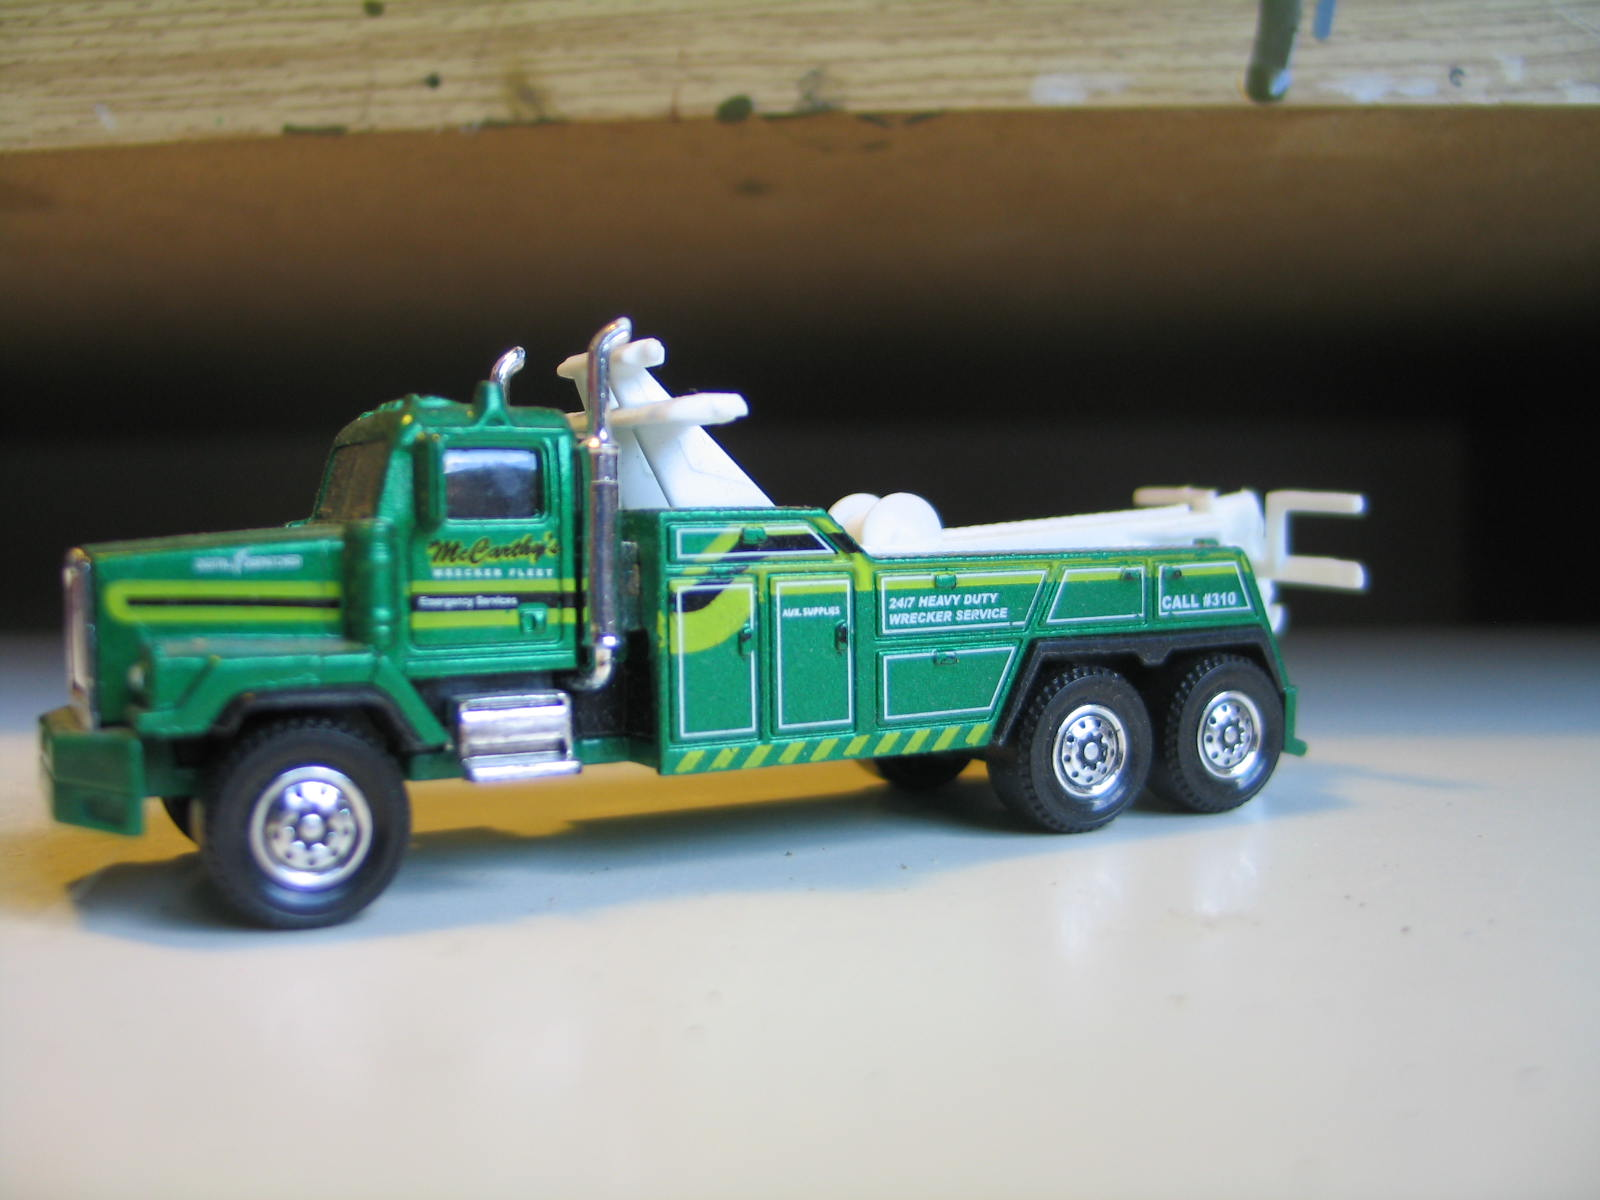 File:Matchbox4 091.jpg